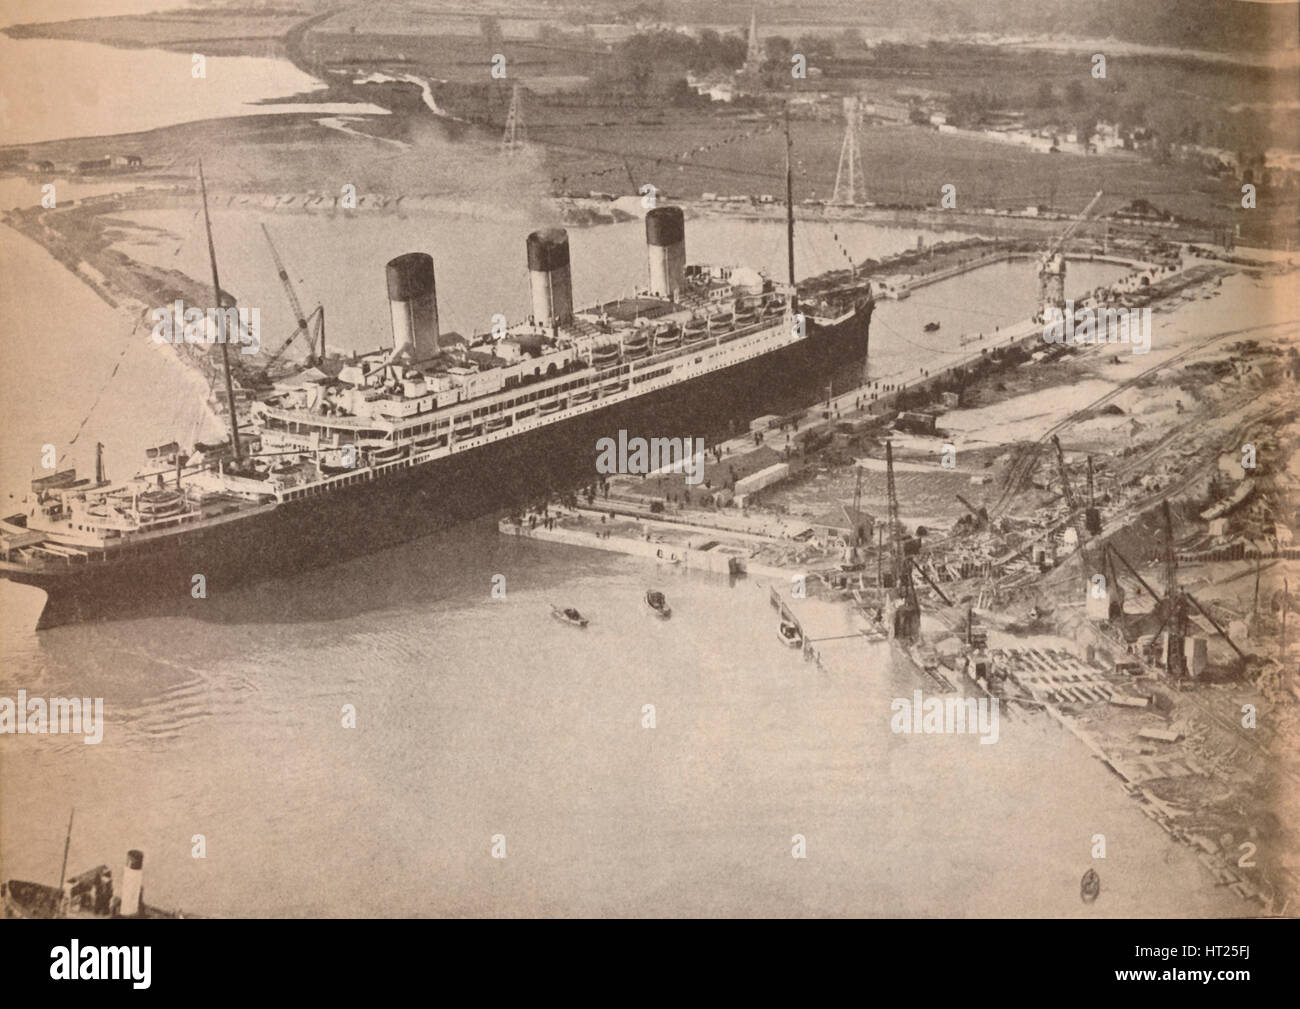 'The White Star Liner Majestic entering the world's largest graving dock at Southampton', c1934, (19 - Stock Image